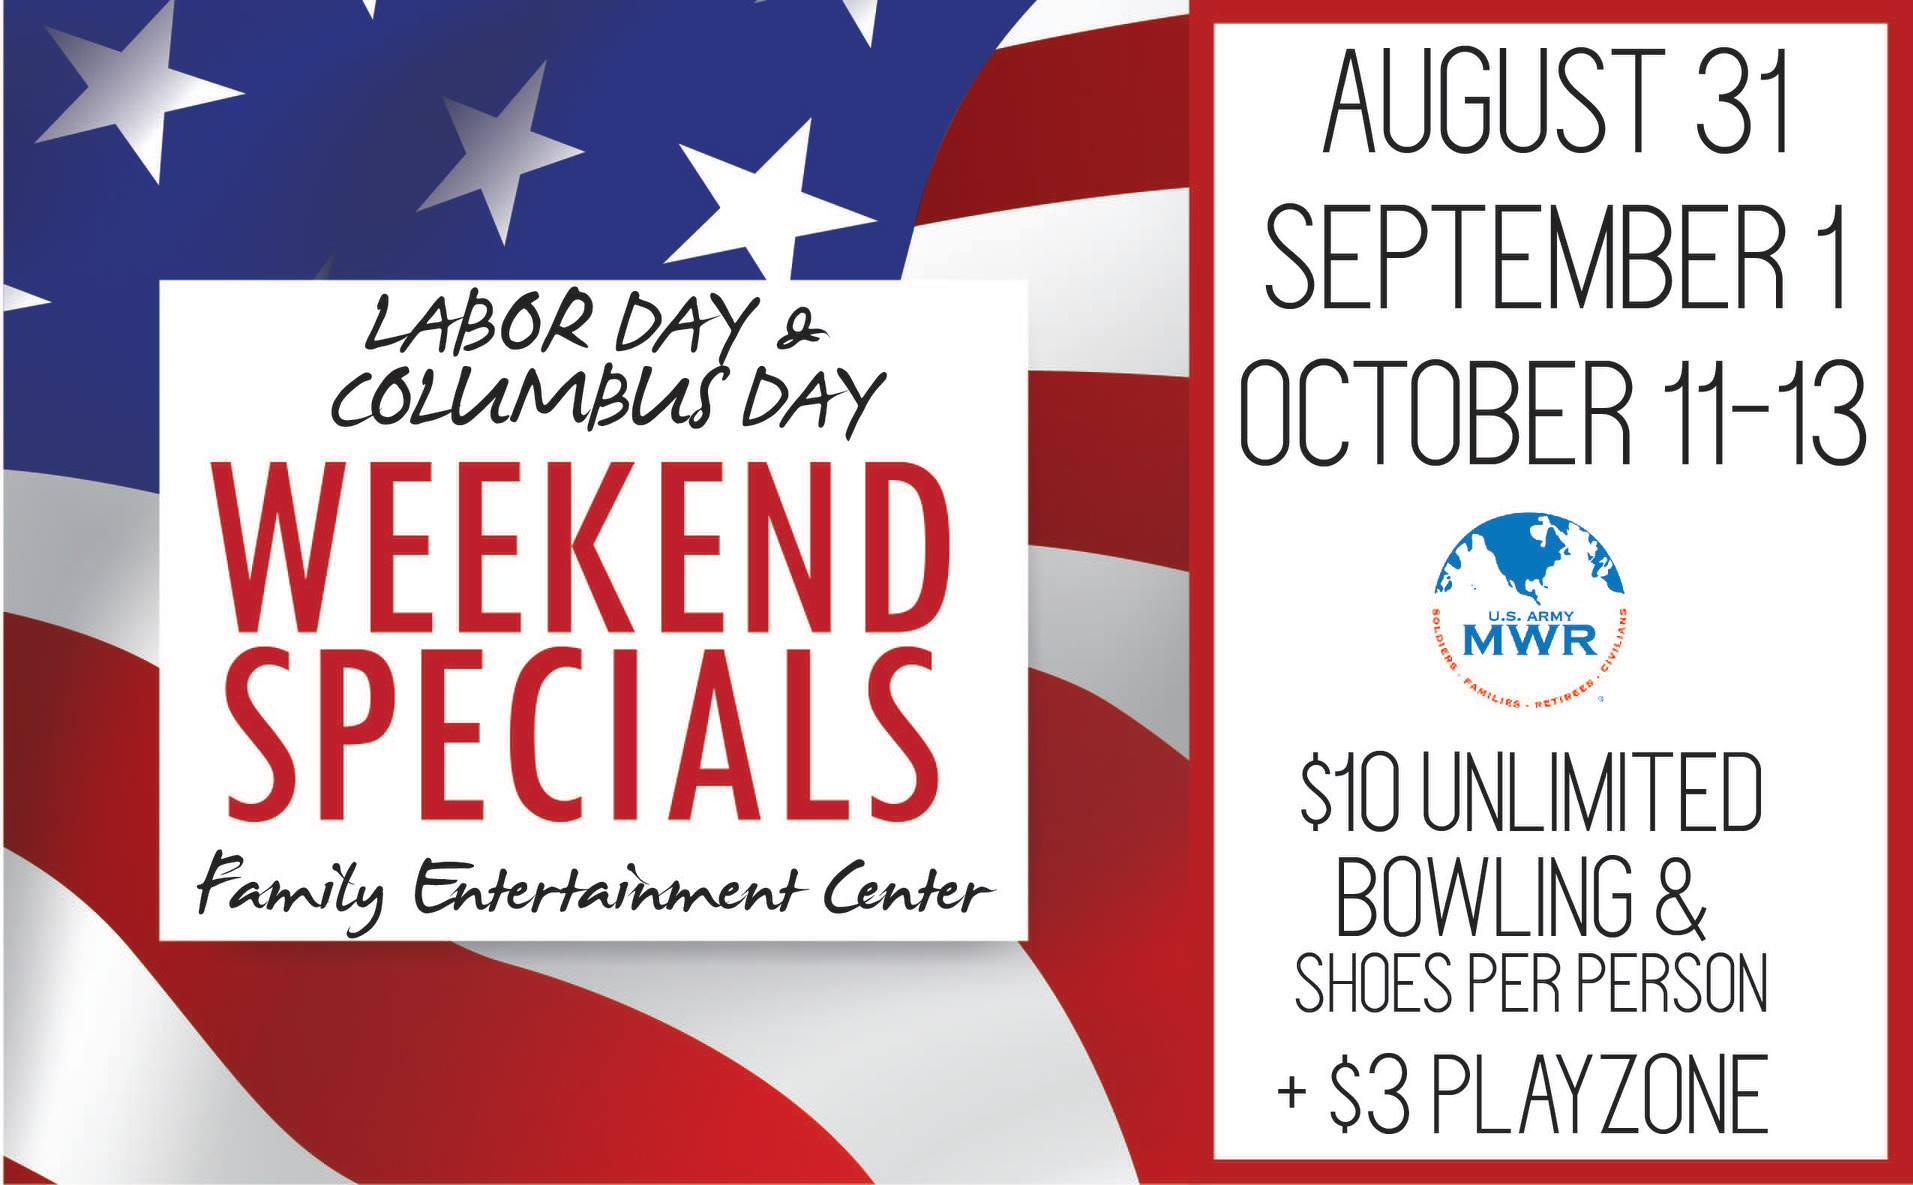 Mall Bowling Labor Day Weekend Special